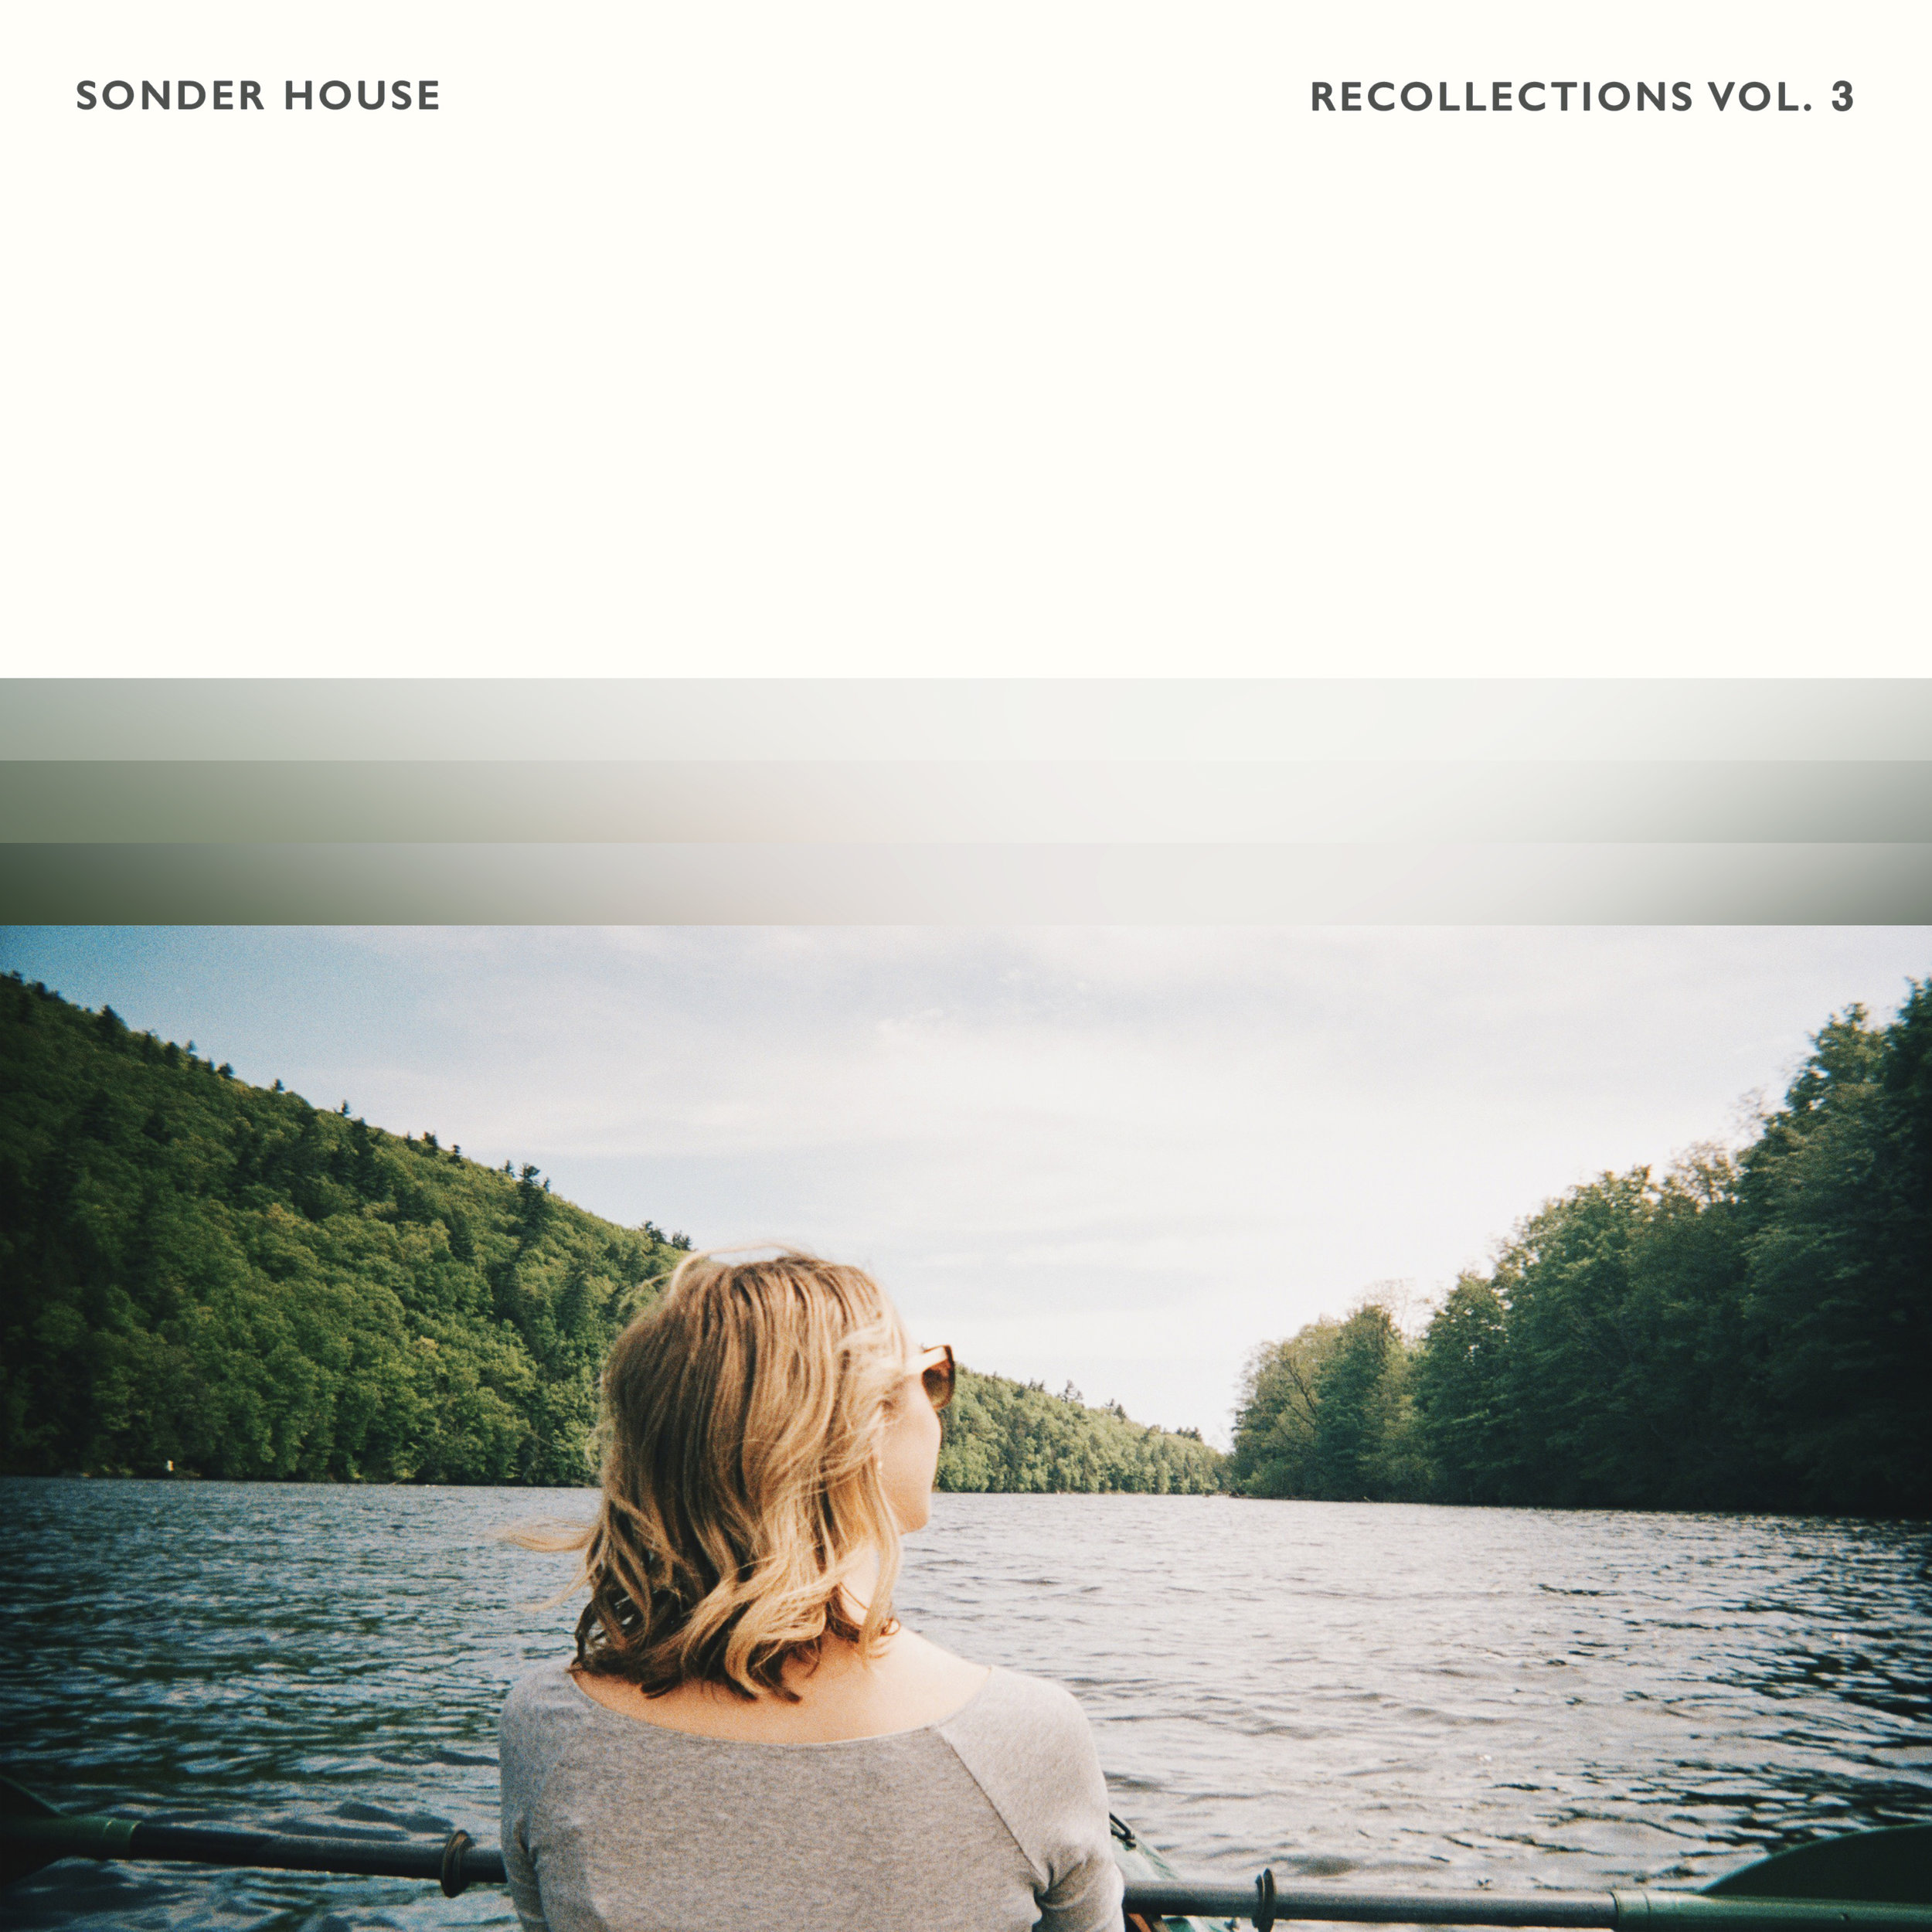 Sonder House - Recollections Vol. 3